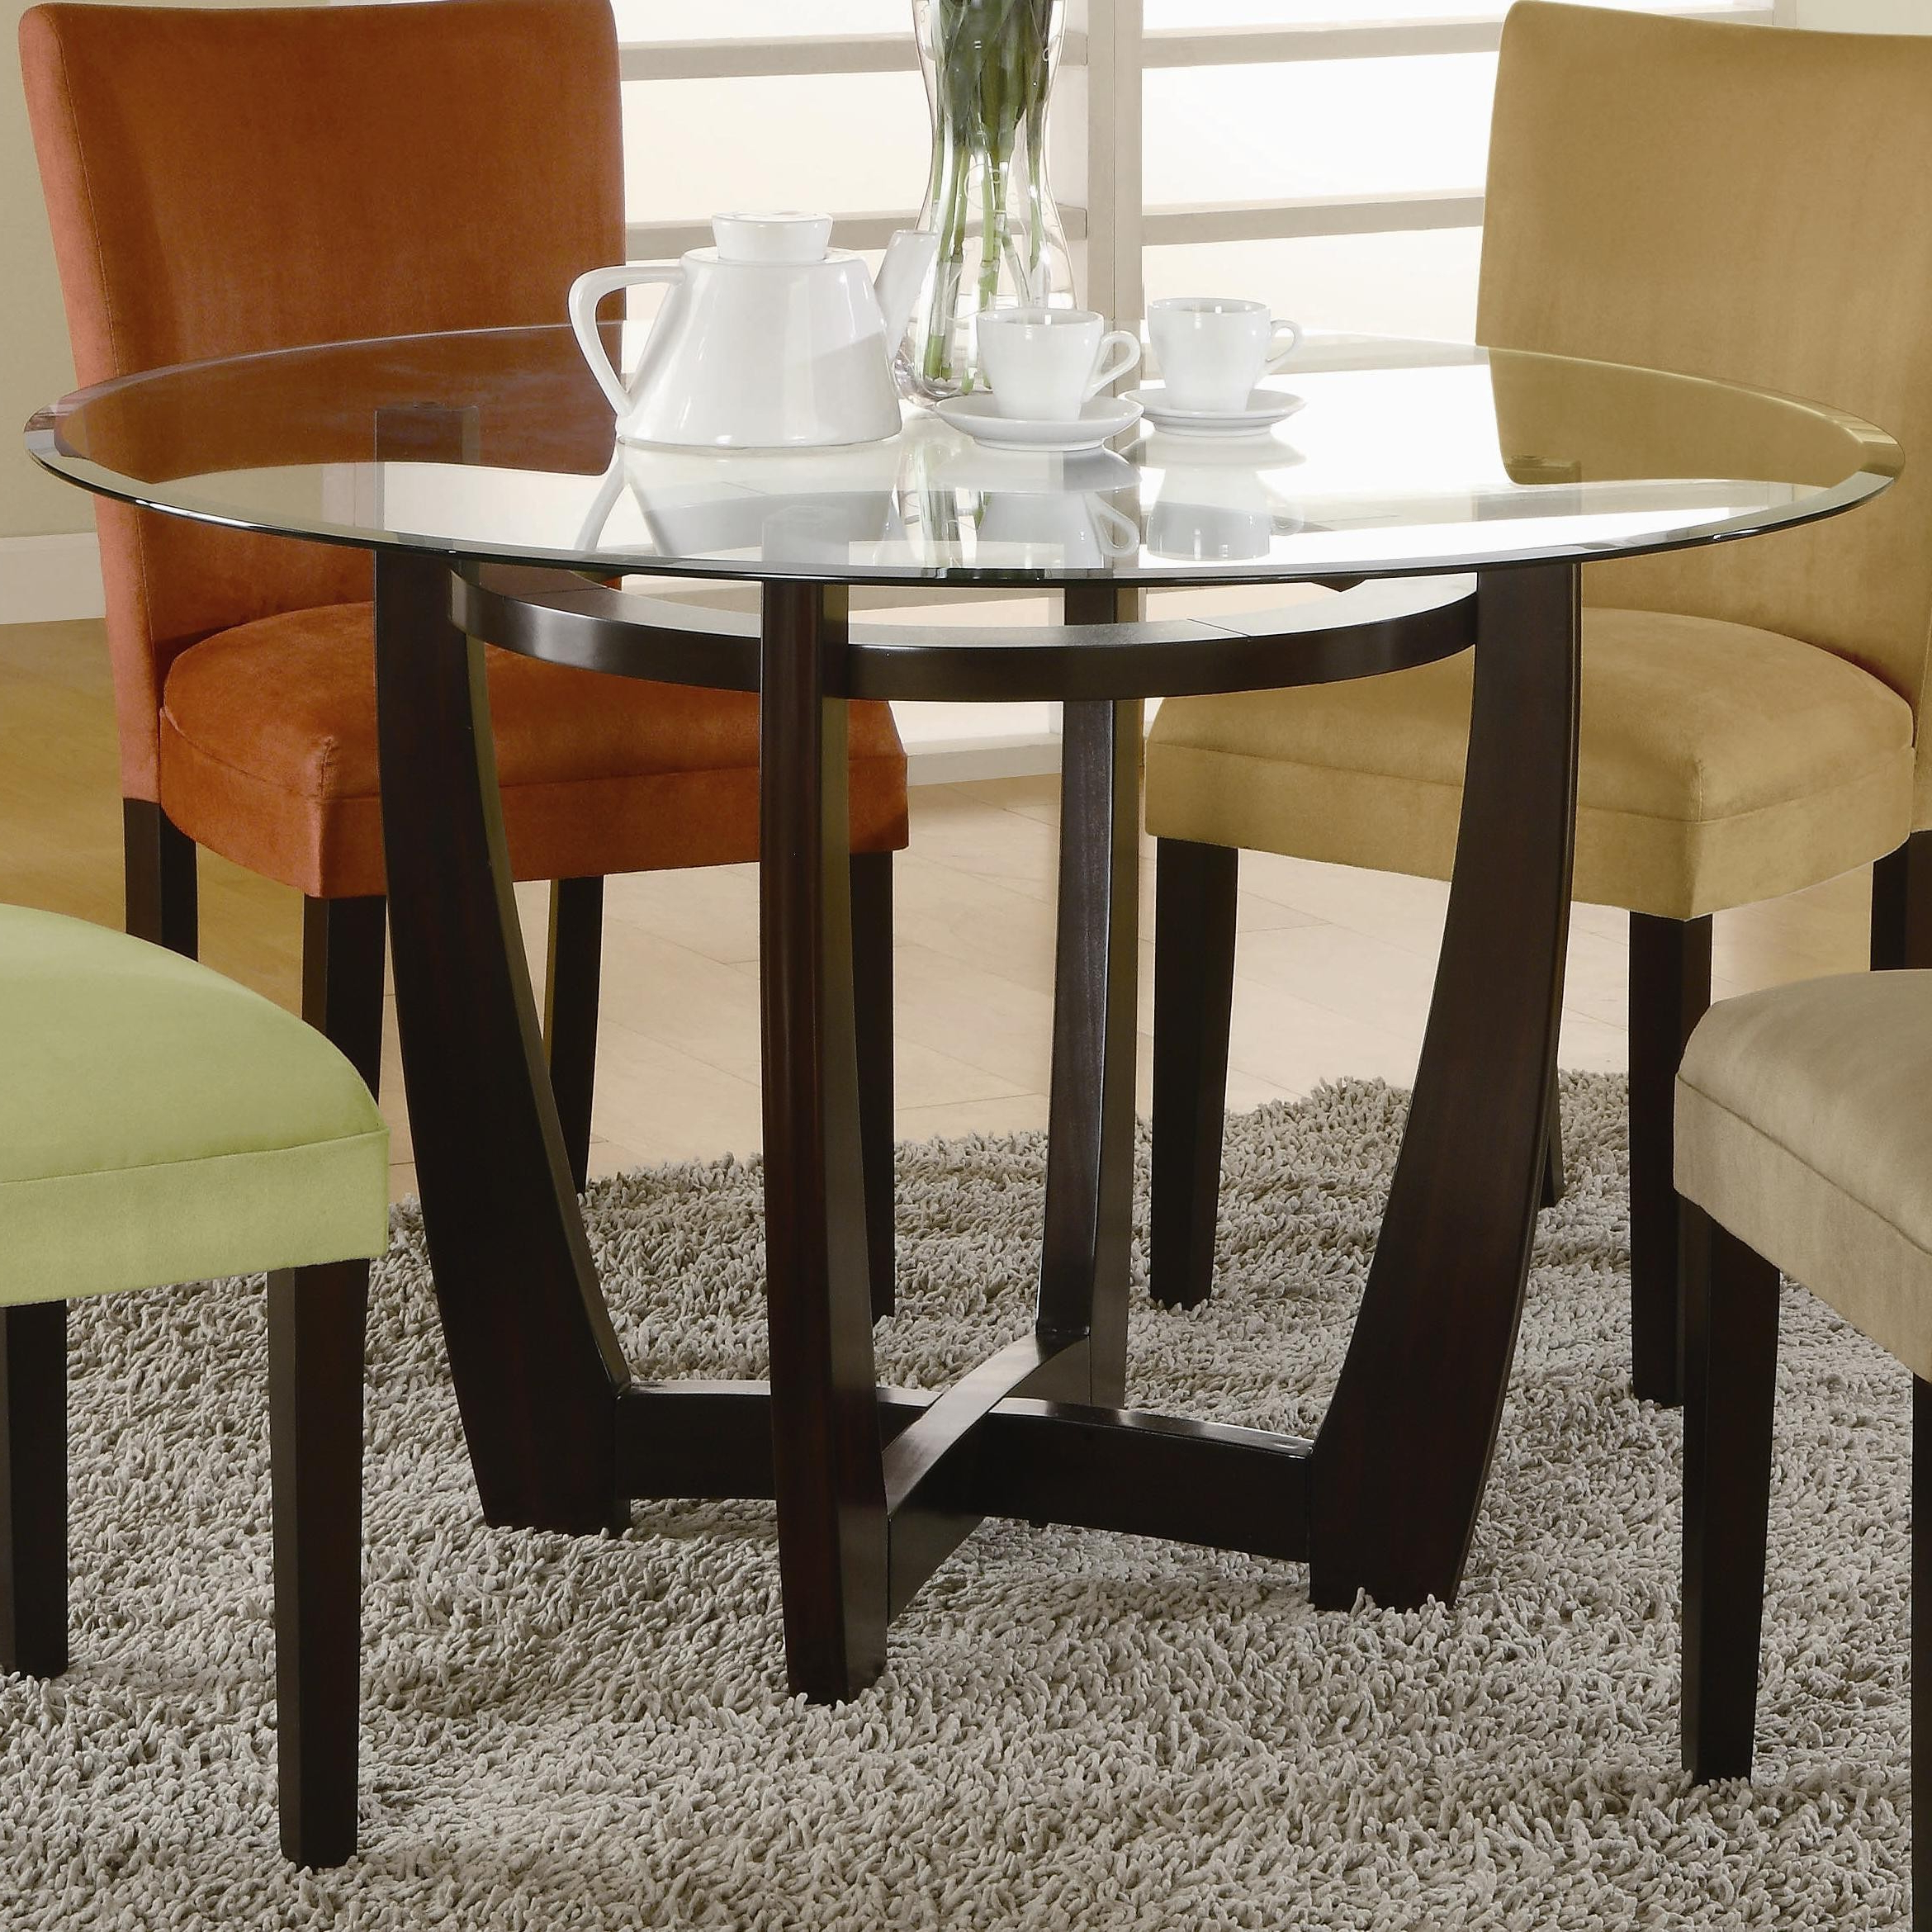 Small Glass Top Dining Table – Fedoraquick – Intended For 2019 Modern Round Glass Top Dining Tables (View 20 of 25)